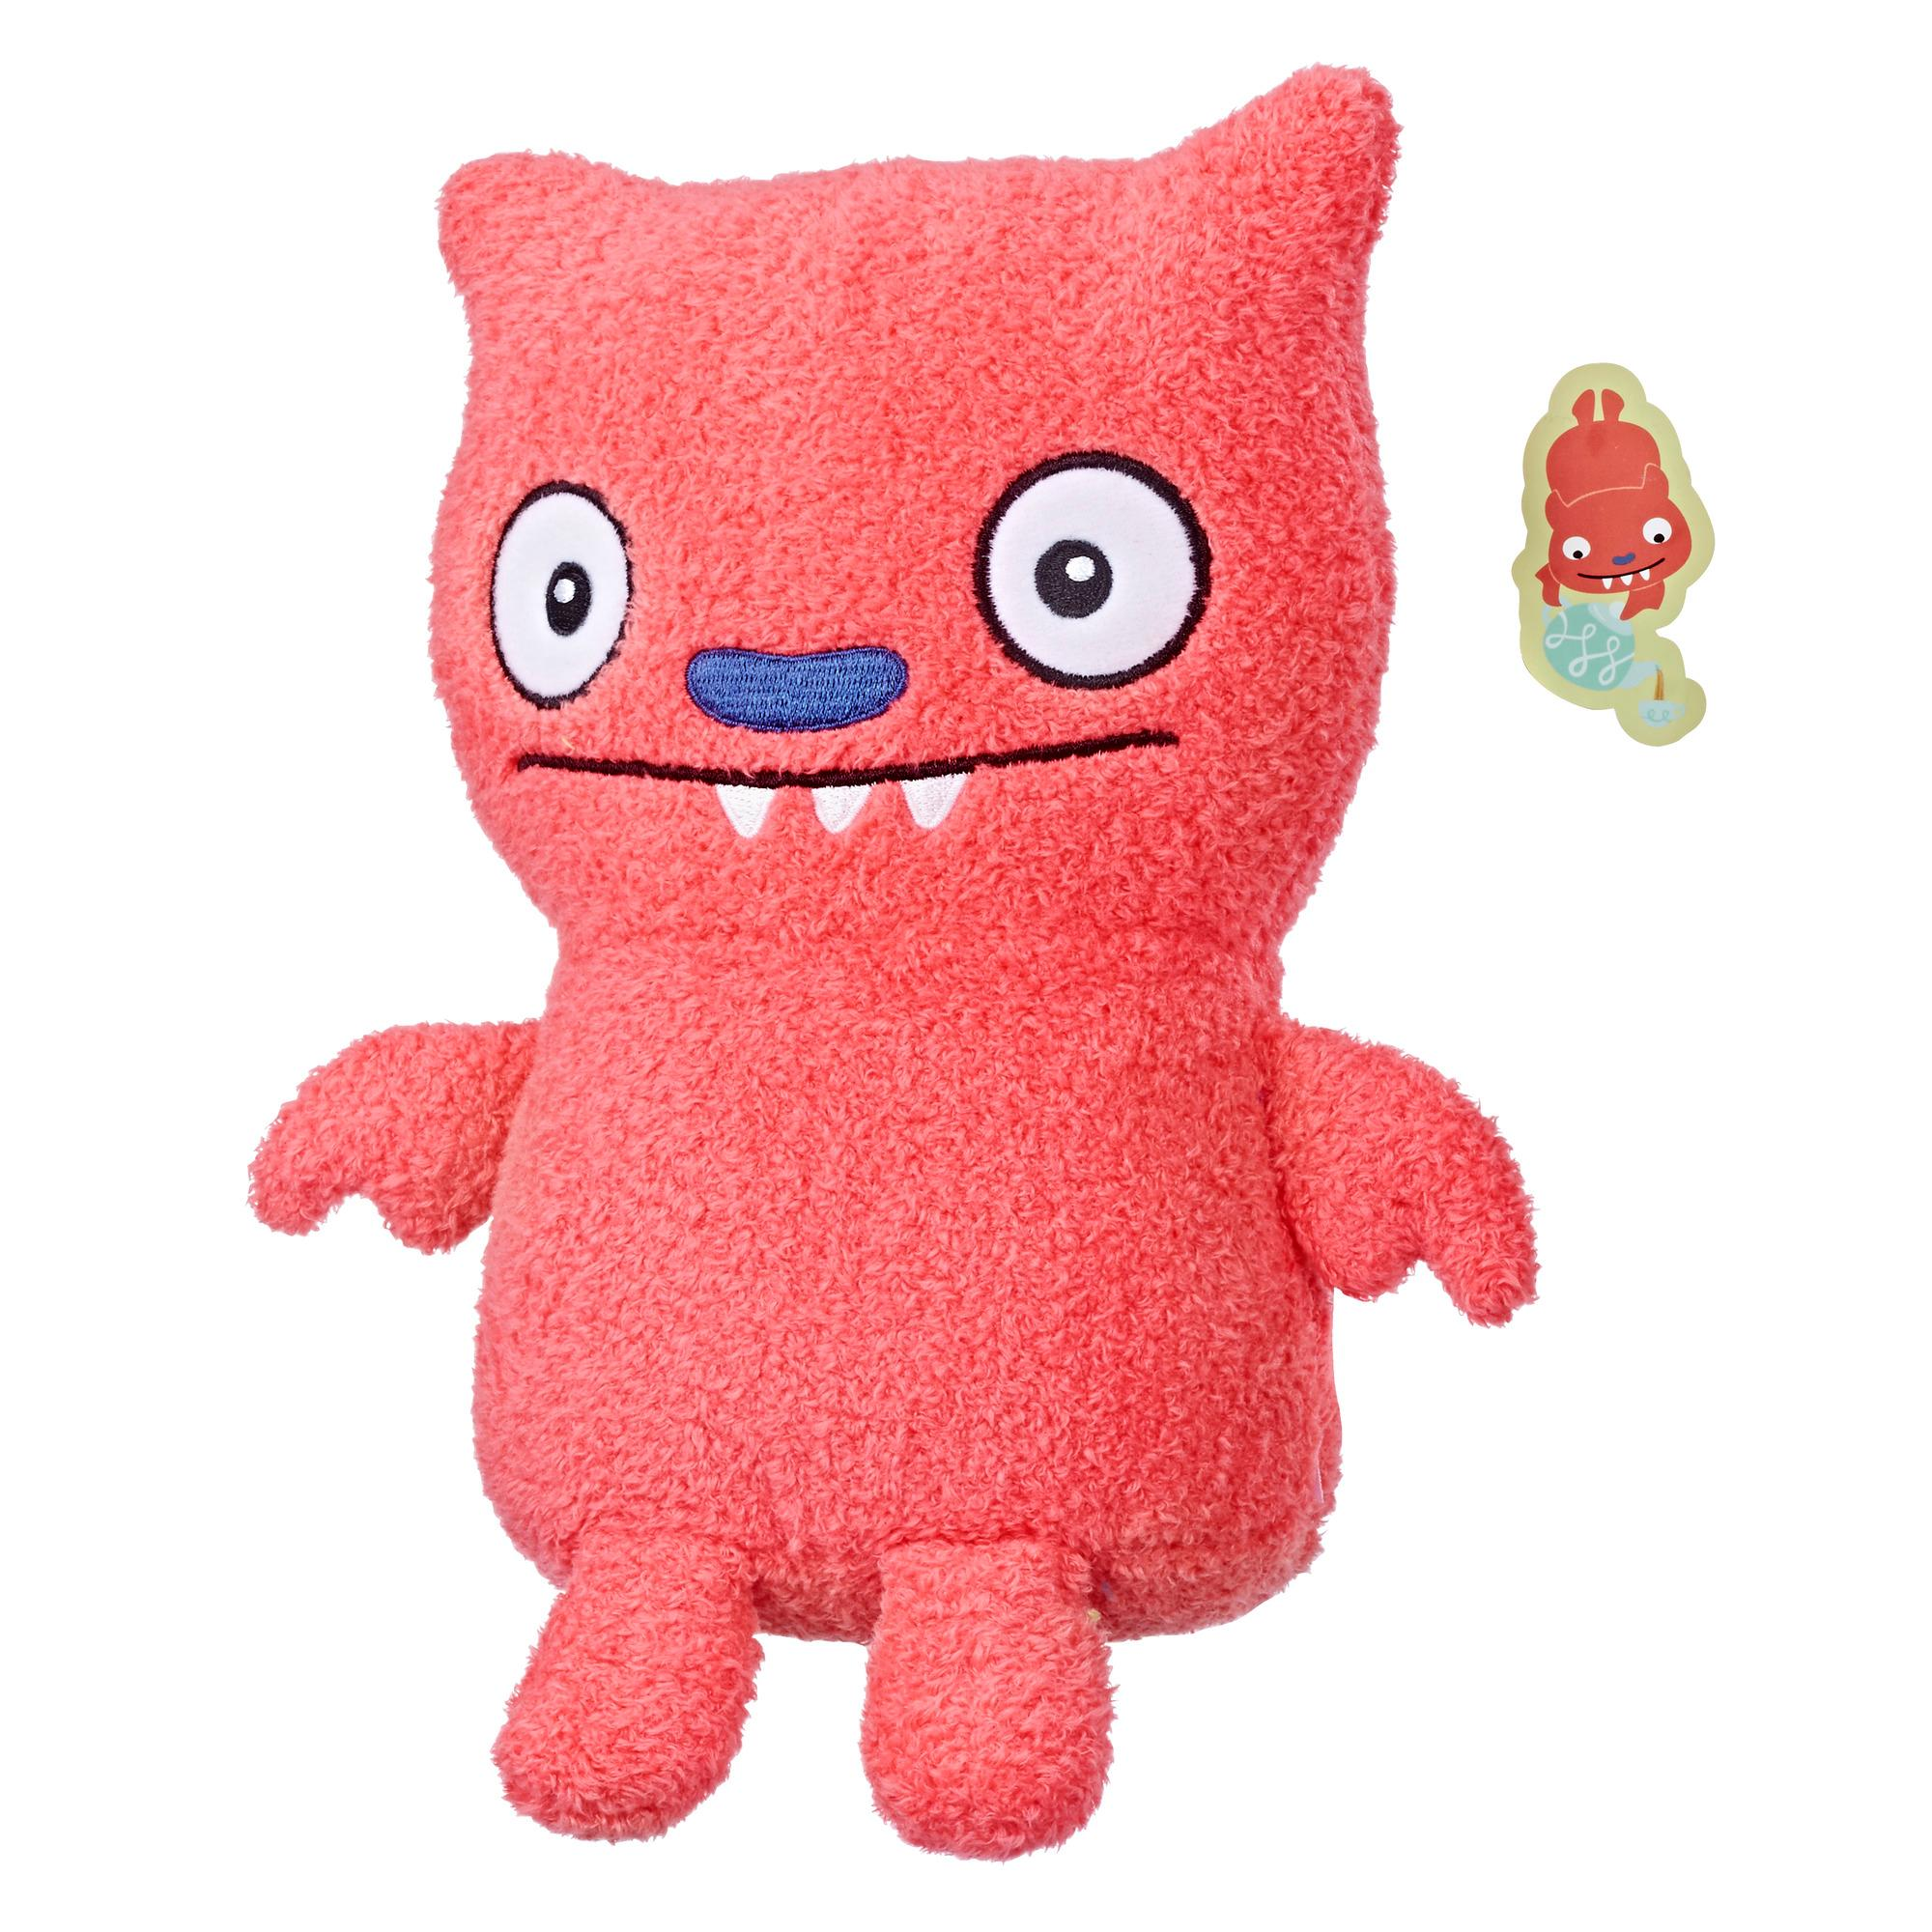 UglyDolls With Gratitude Lucky Bat Stuffed Plush Toy, 9.5 inches tall